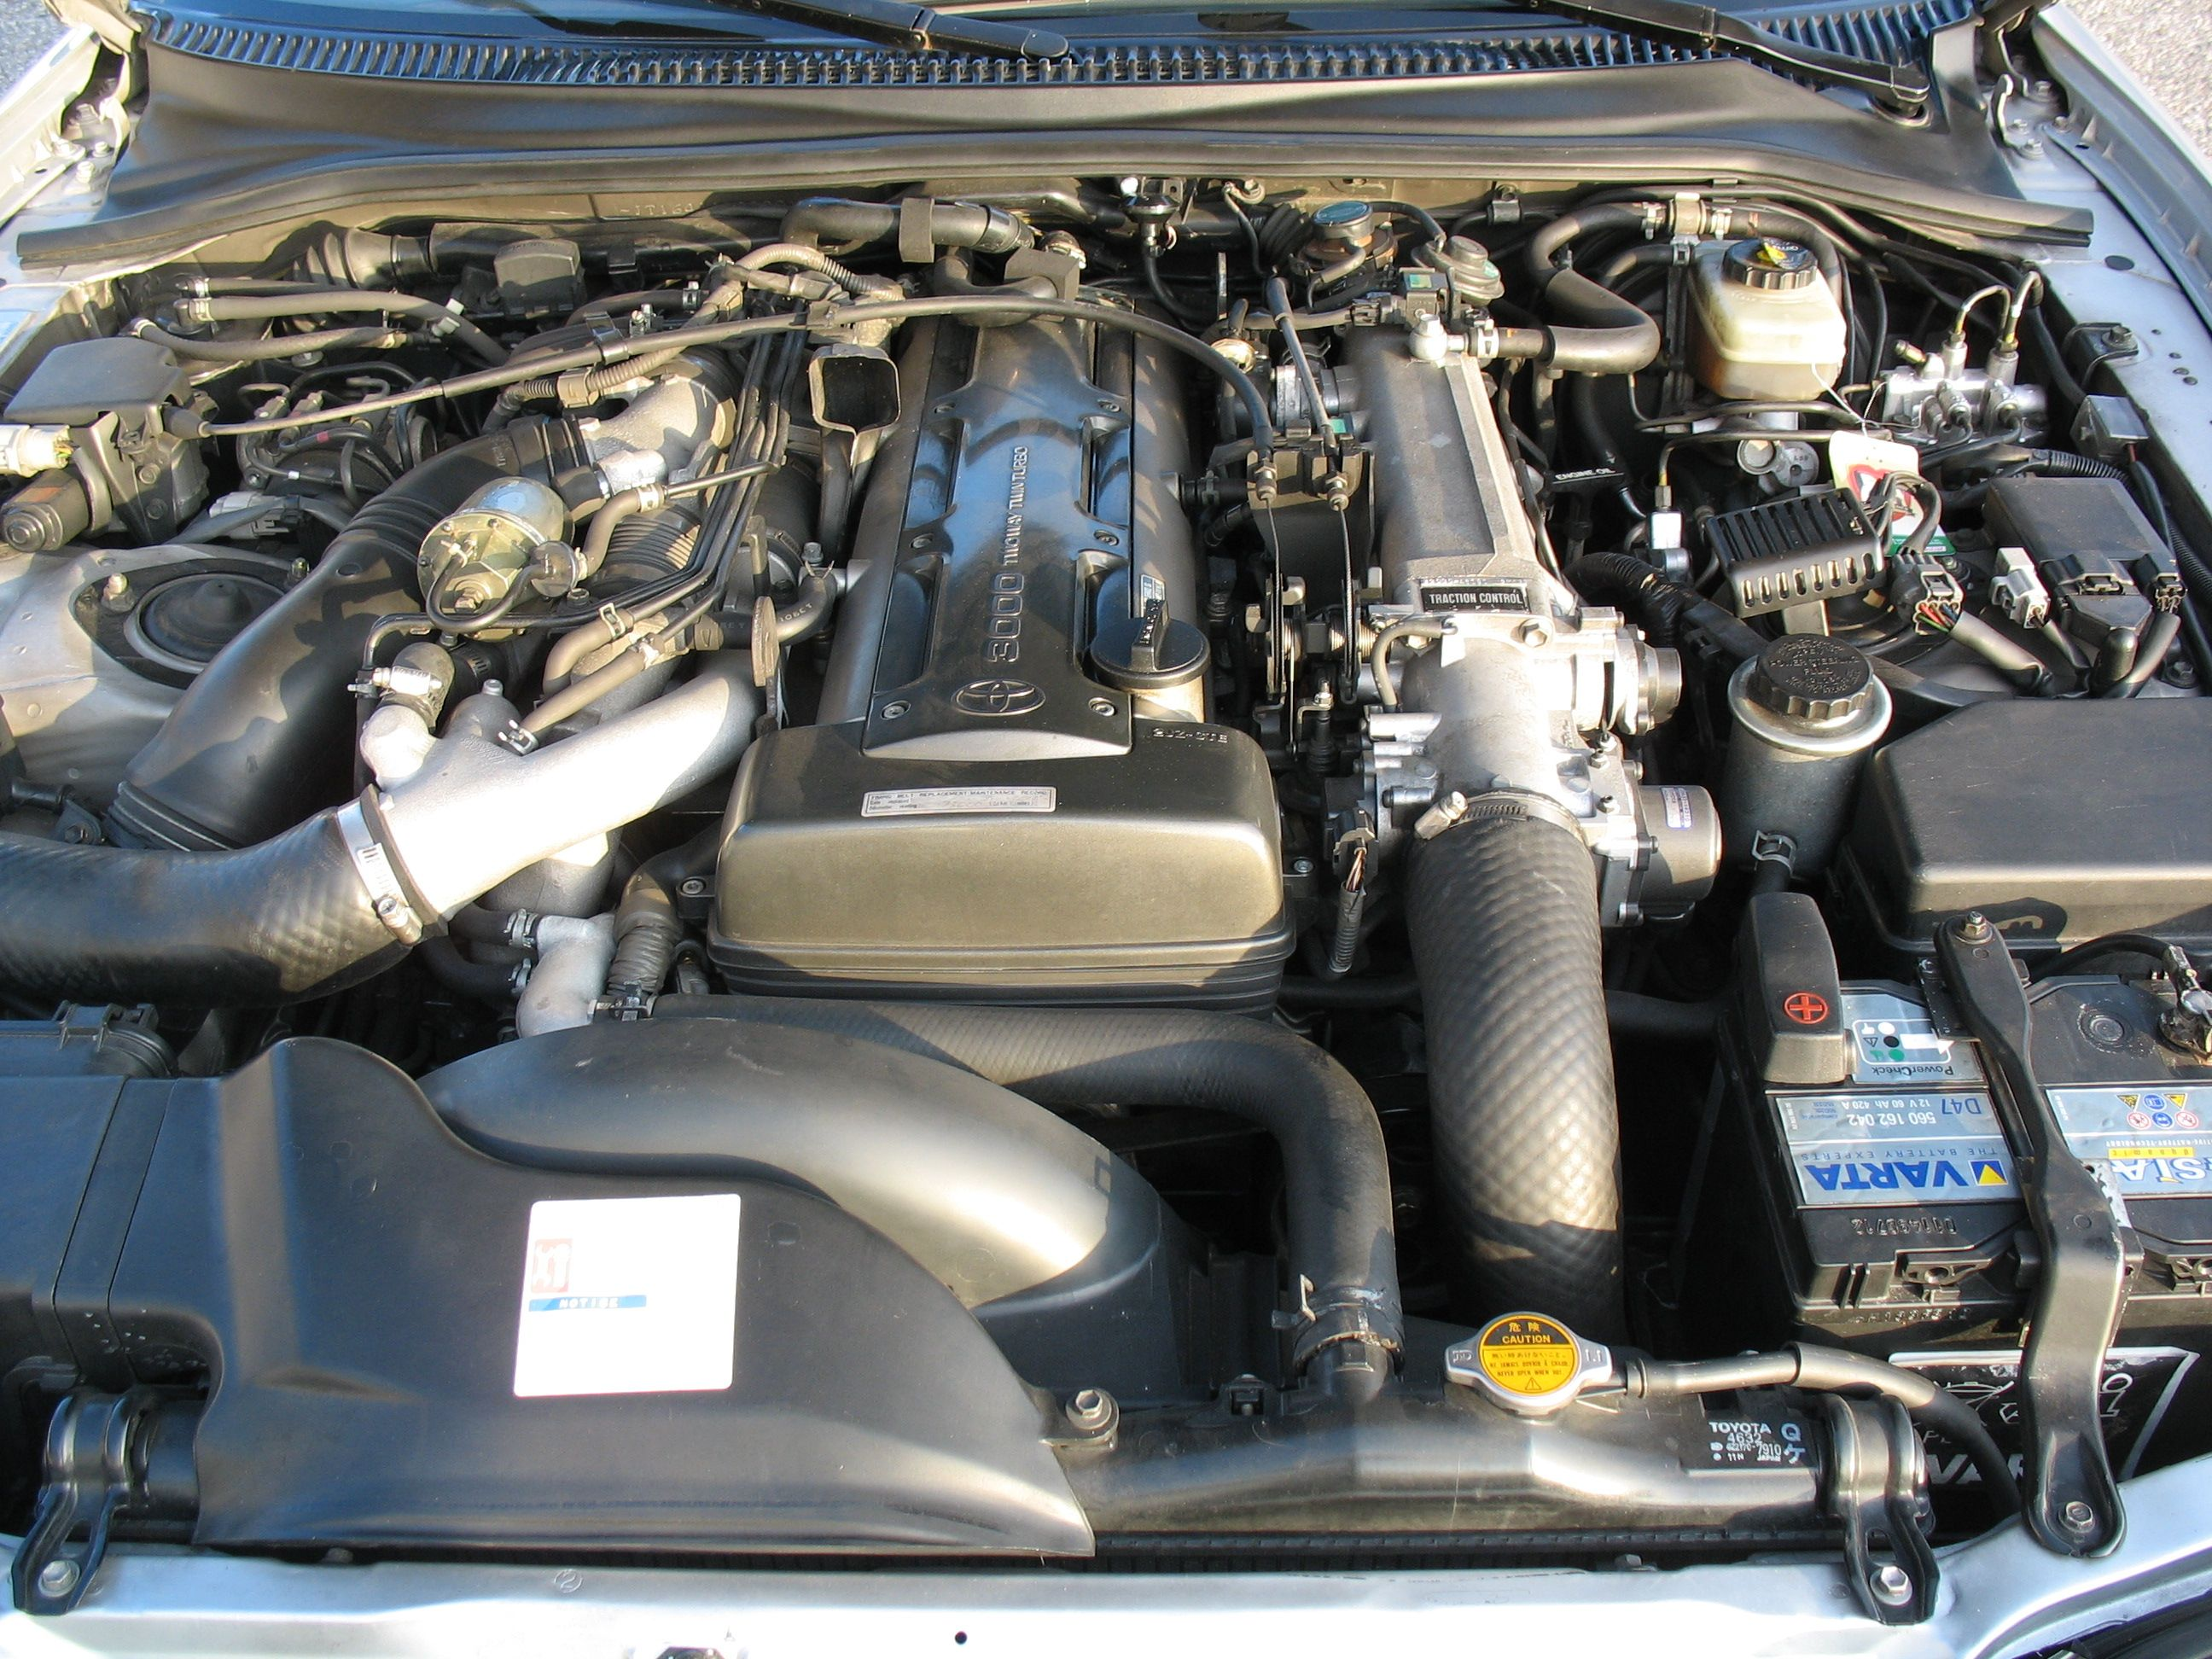 The 10 Best Car Engines They Stopped Making in the Last 20 Years